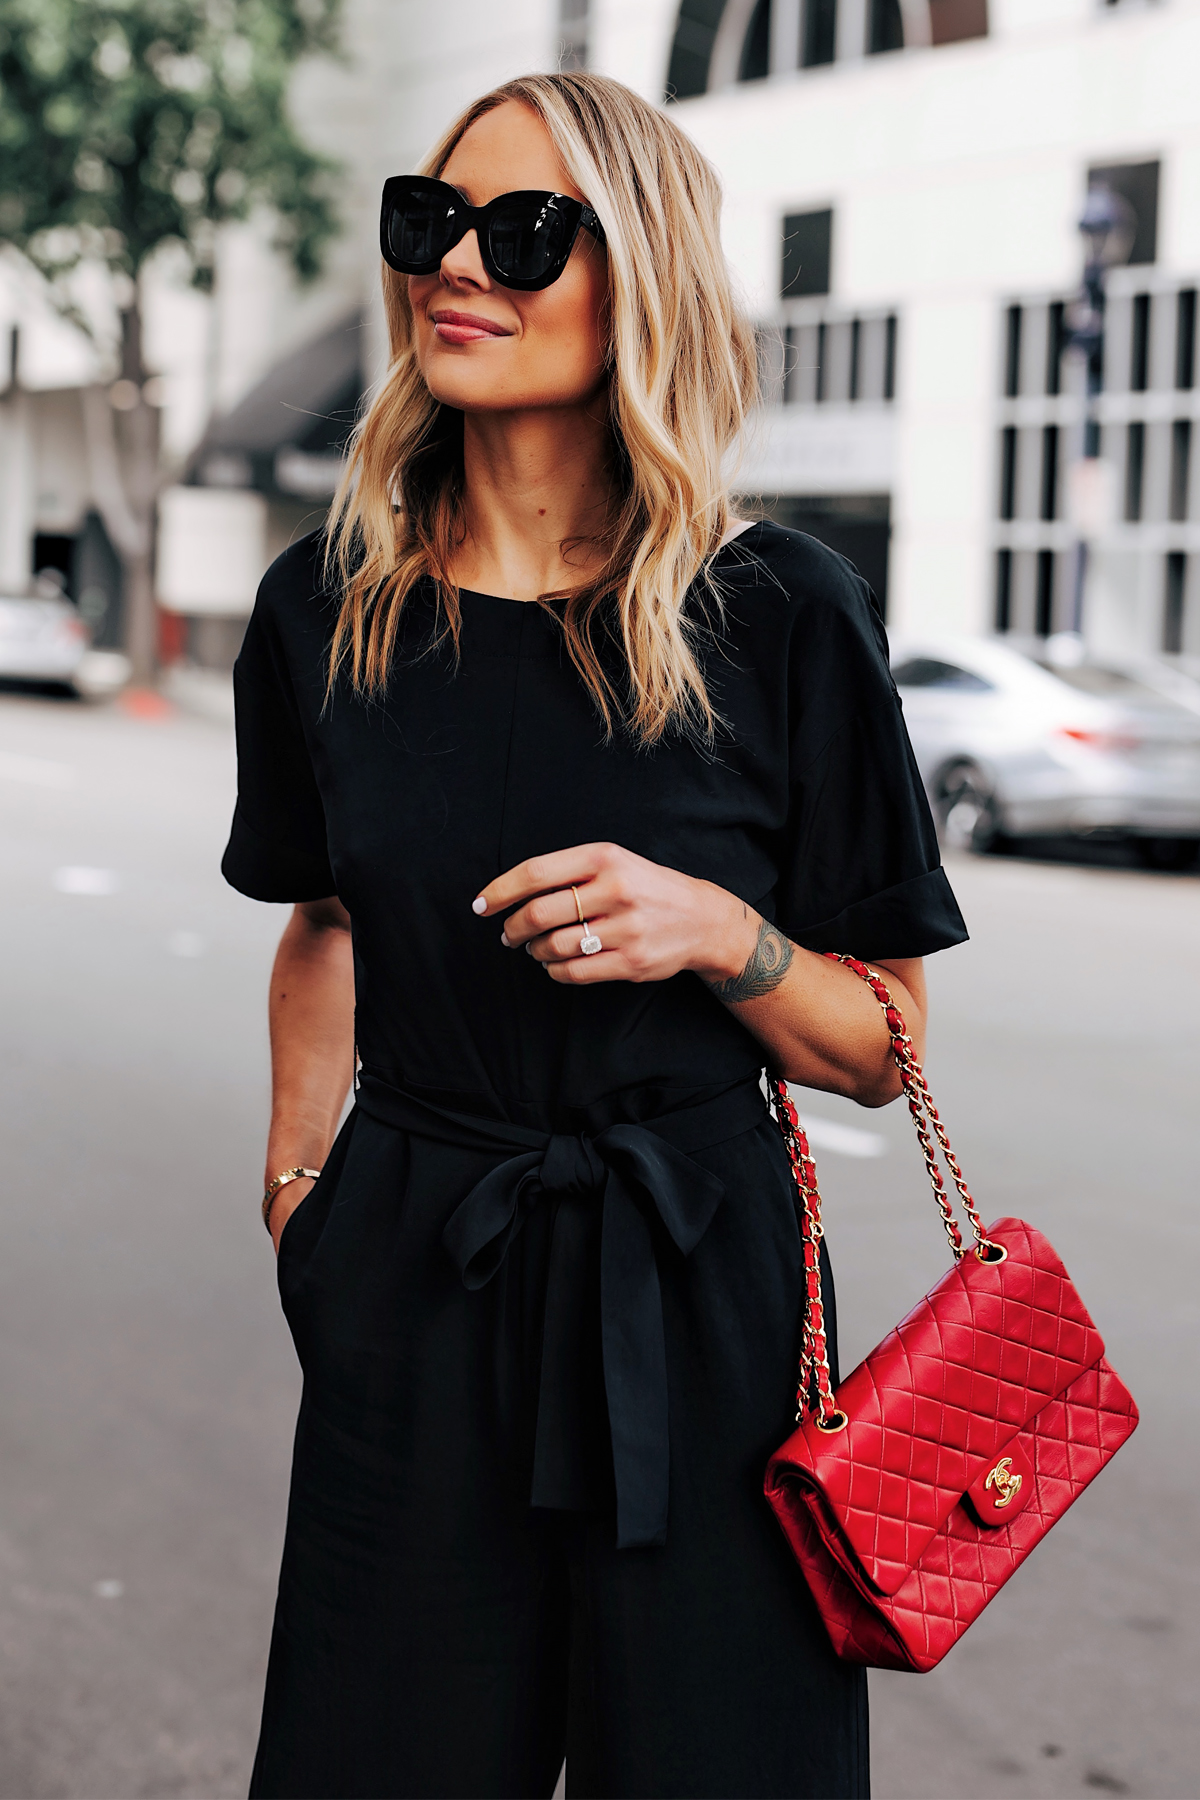 Blonde Woman Wearing Everlane Black Jumpsuit Tie Waist Red Chanel Handbag Fashion Jackson San Diego Fashion Blogger Street Style